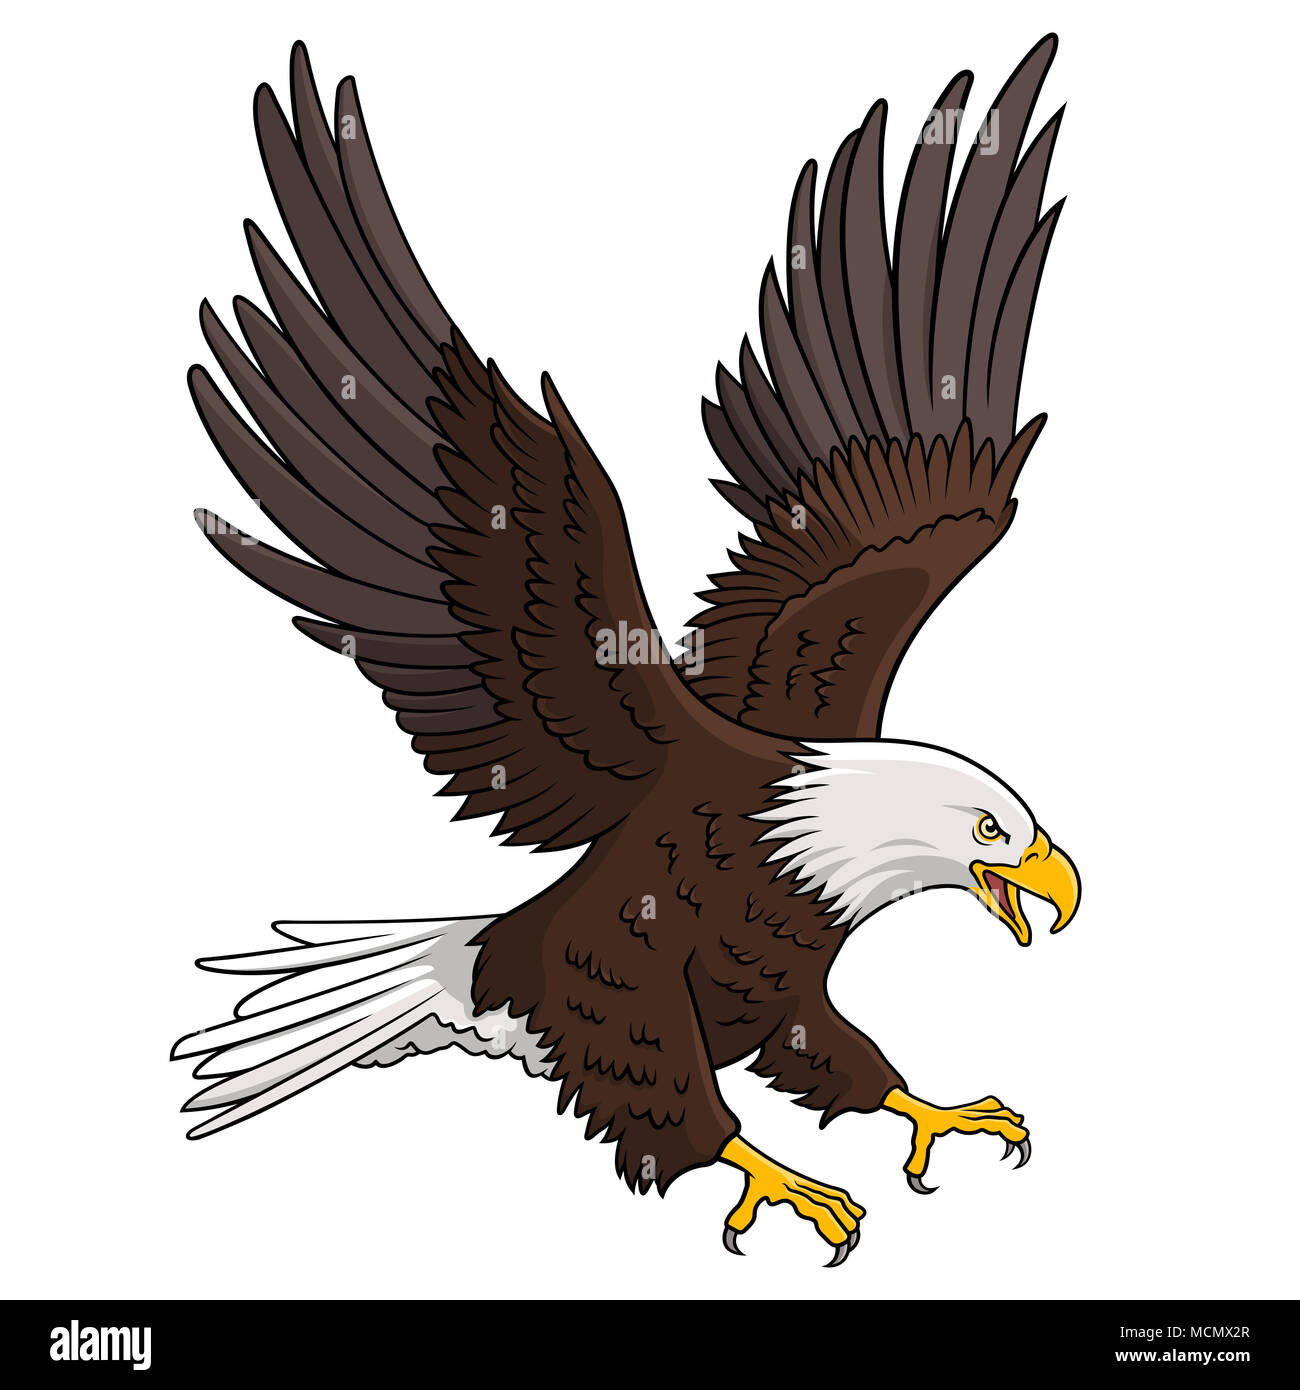 Bald Eagle isolated on white. This vector illustration can be used as a print on T-shirts, tattoo element or other uses - Stock Image